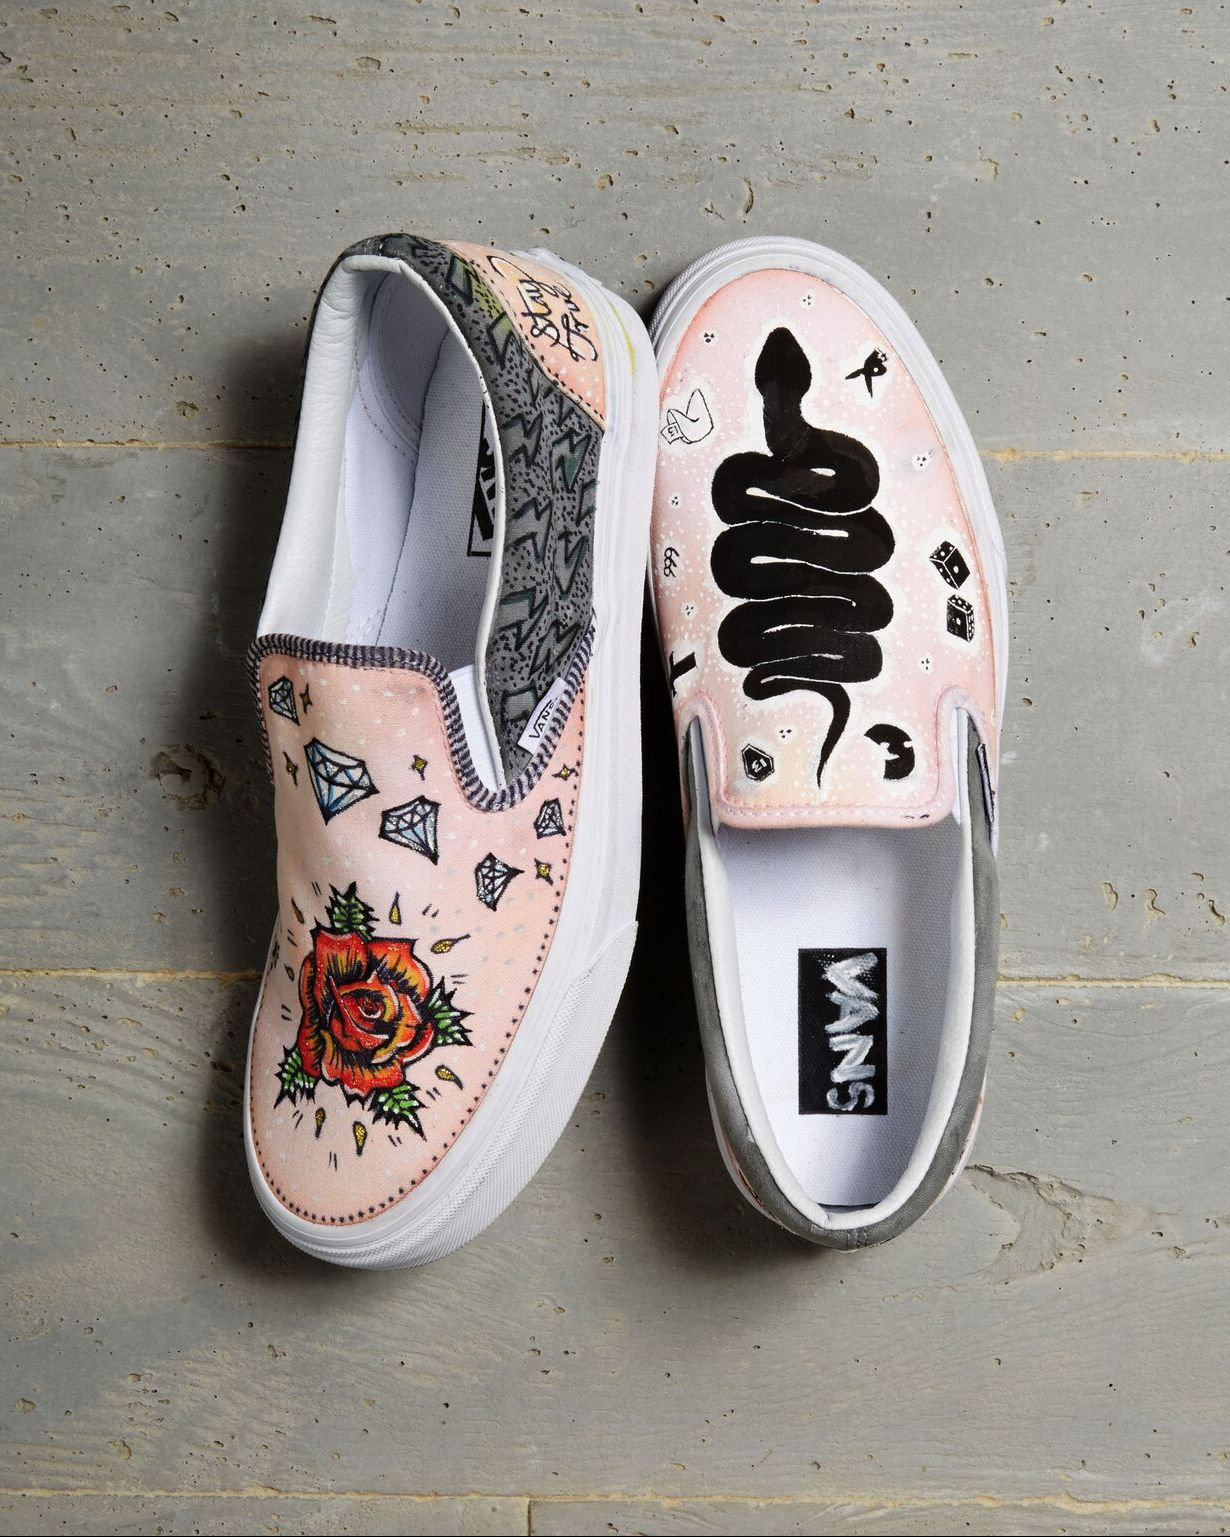 d90c84a5d6 Shoes by 2018 Vans Custom Culture ambassador